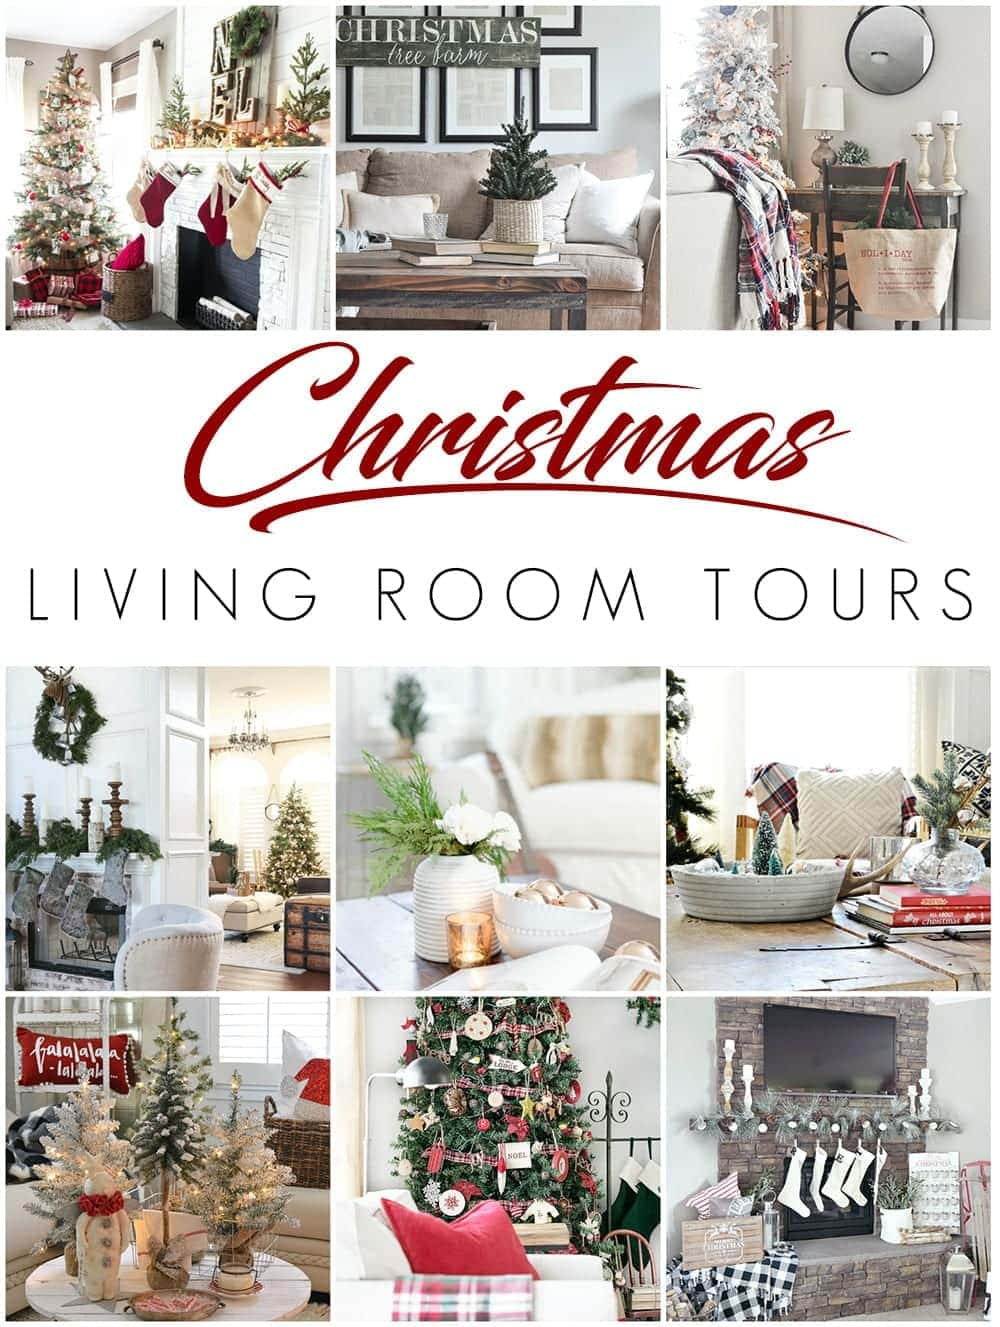 Christmas Decorating Ideas Dining Room